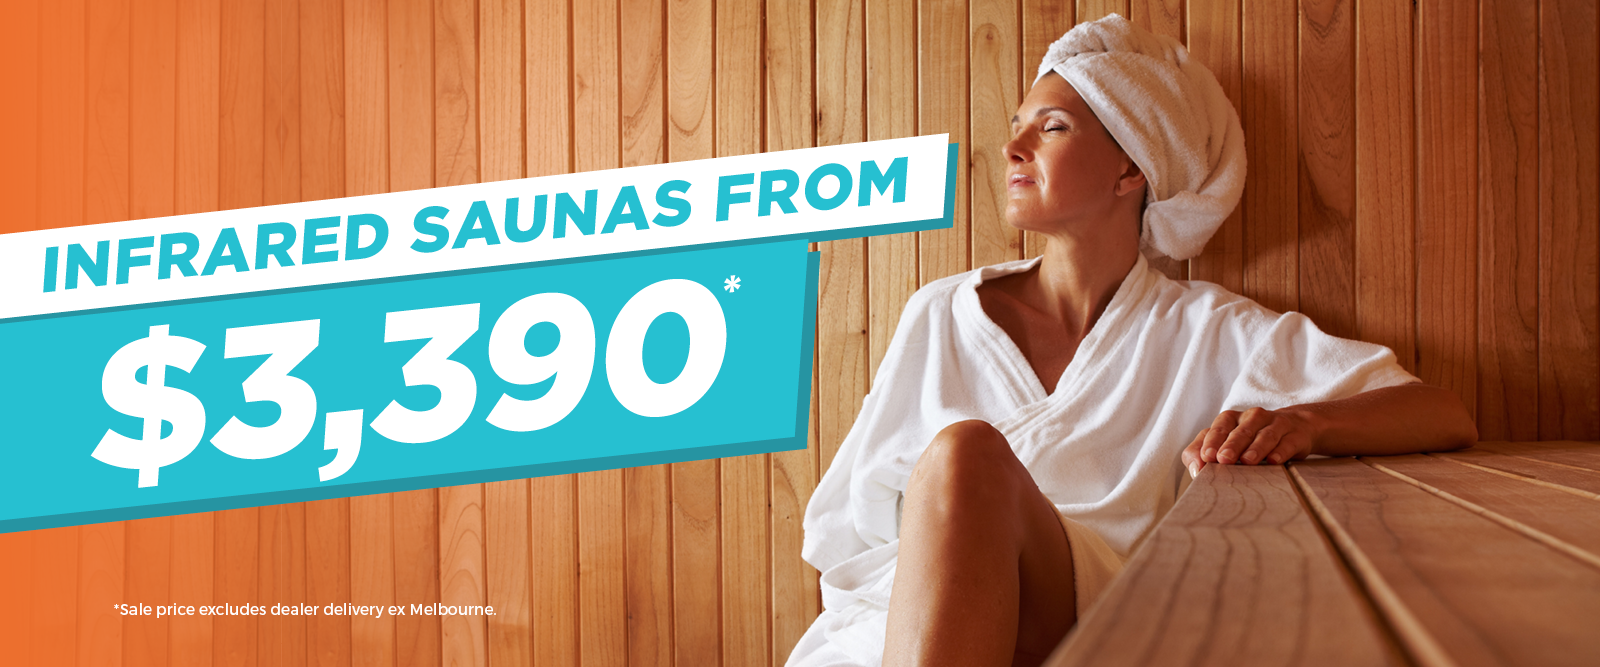 Infrared Saunas from $3390